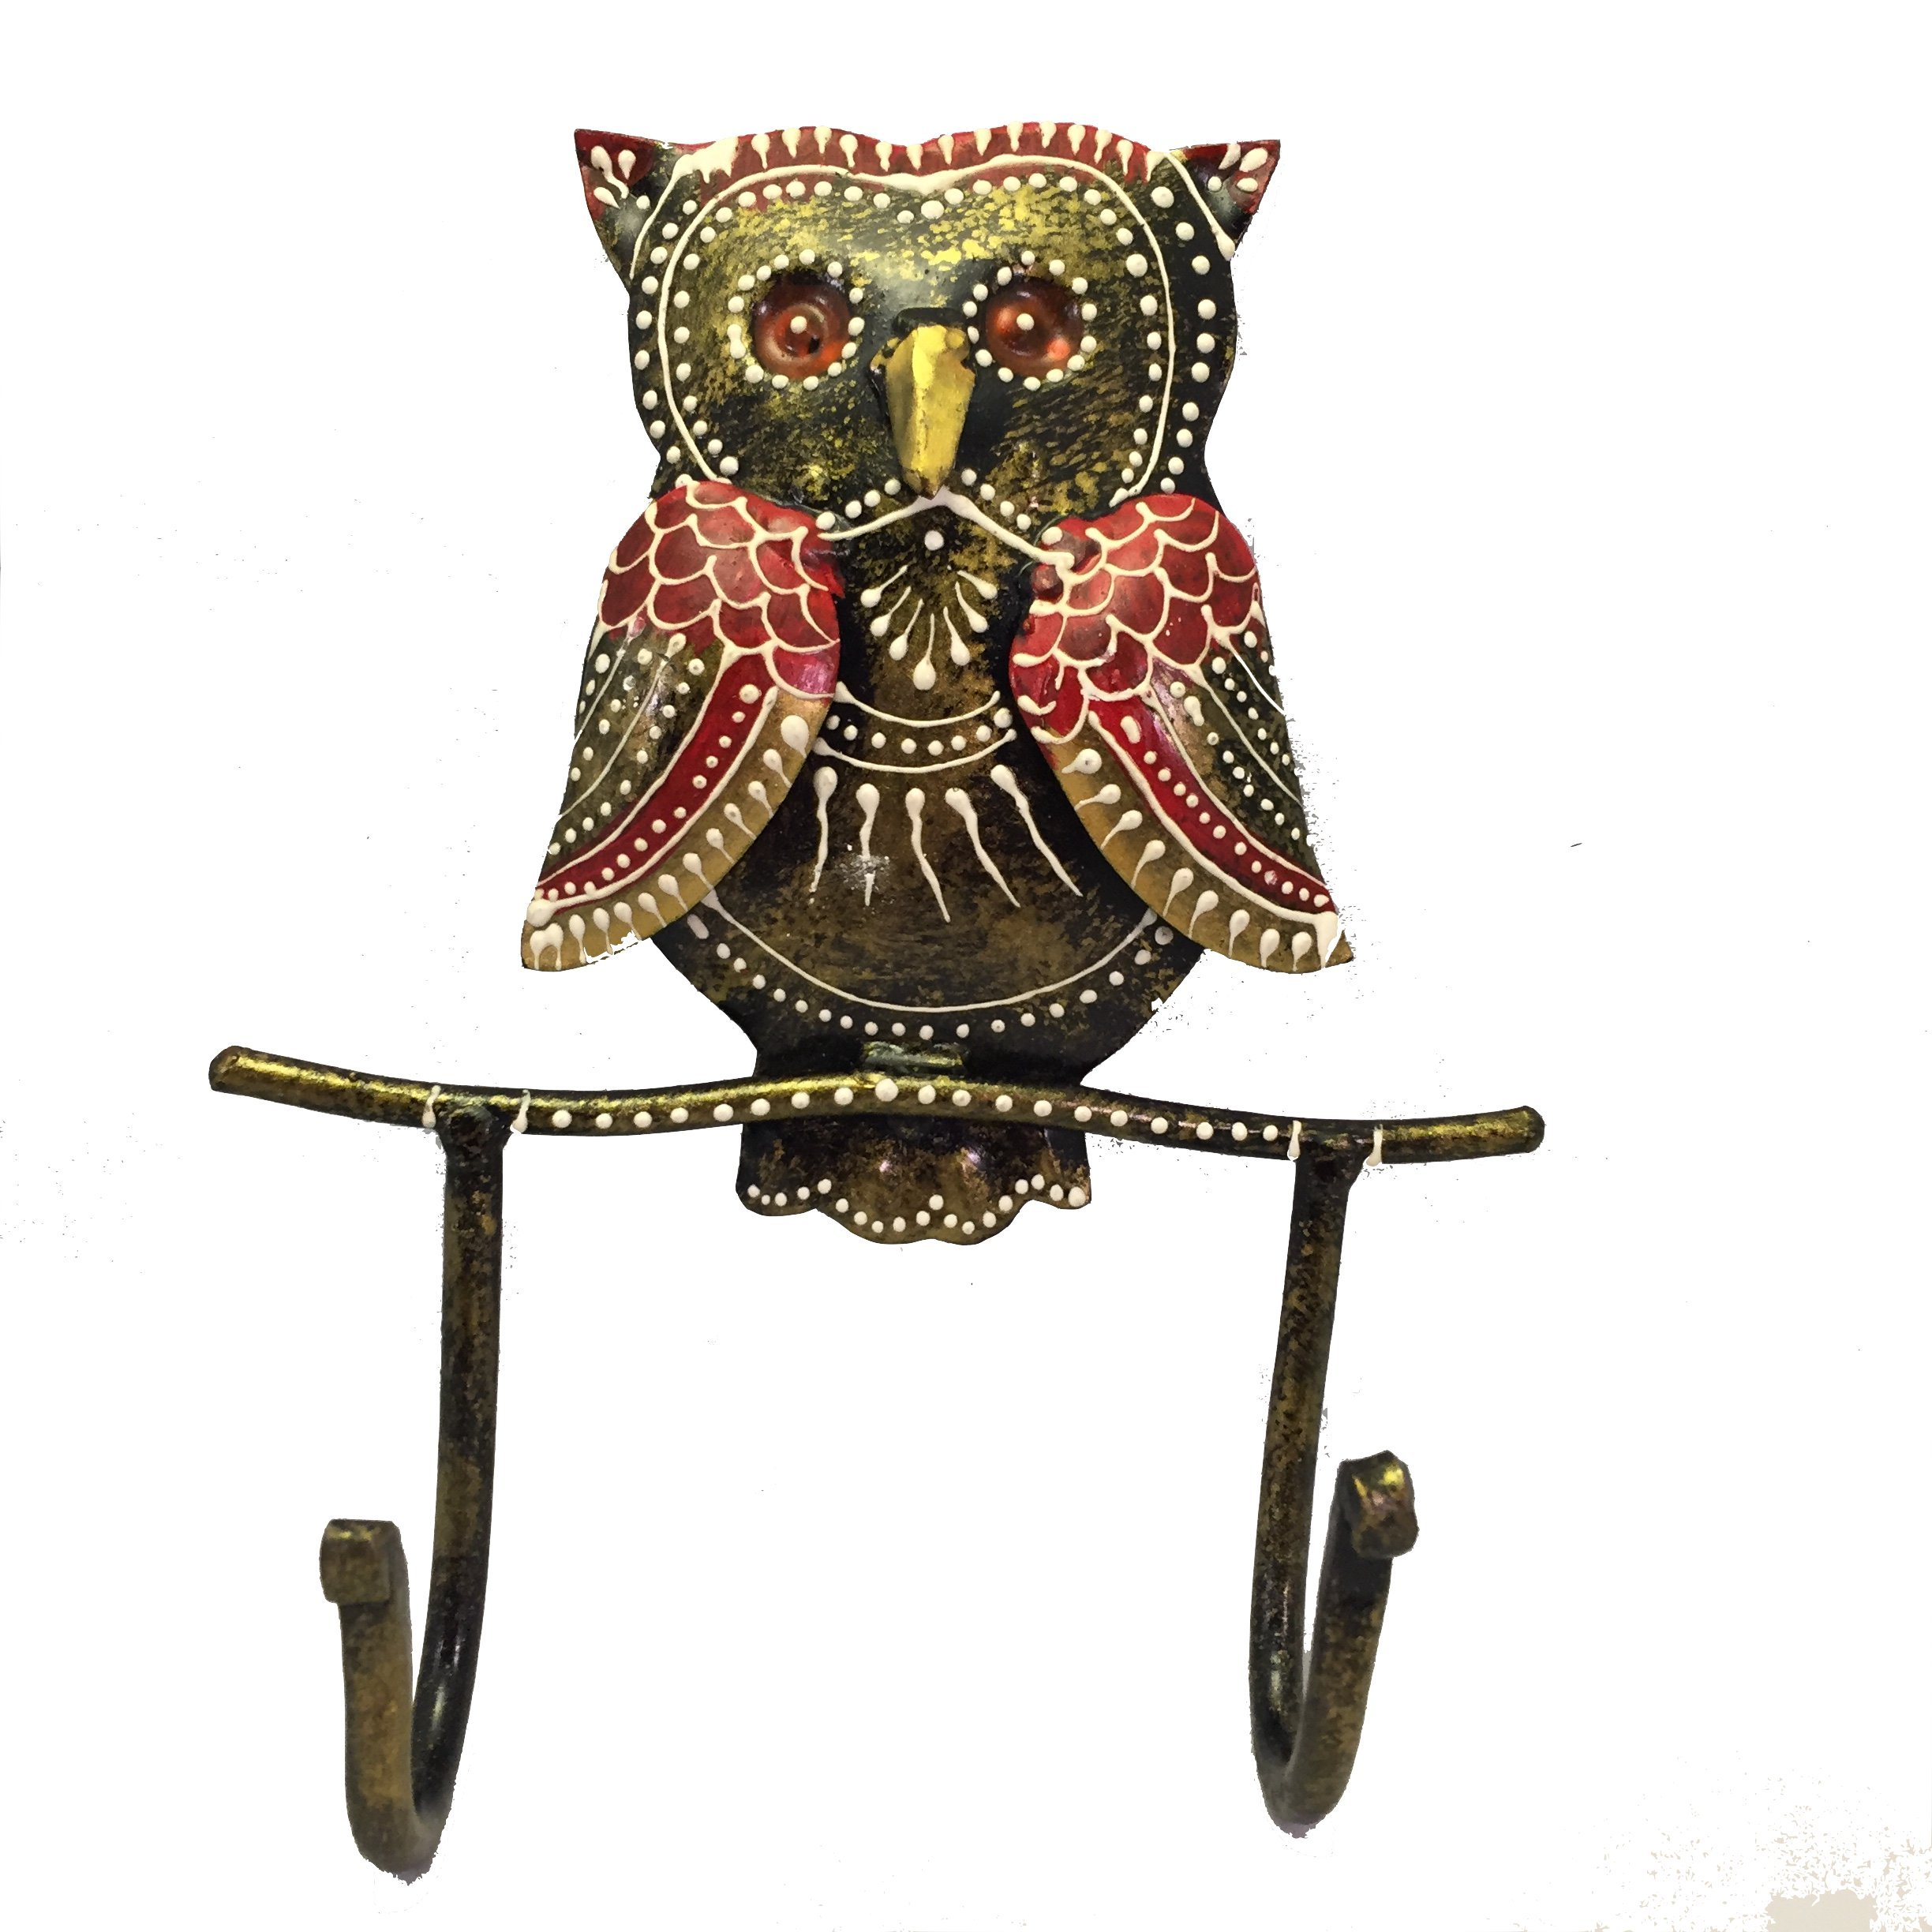 Owl Wall Hook - Decorative Iron Wall-Mounted Hanger for Coats, Keys, Hats or Purses - Hand Painted Decor by Journey Of My Spirit